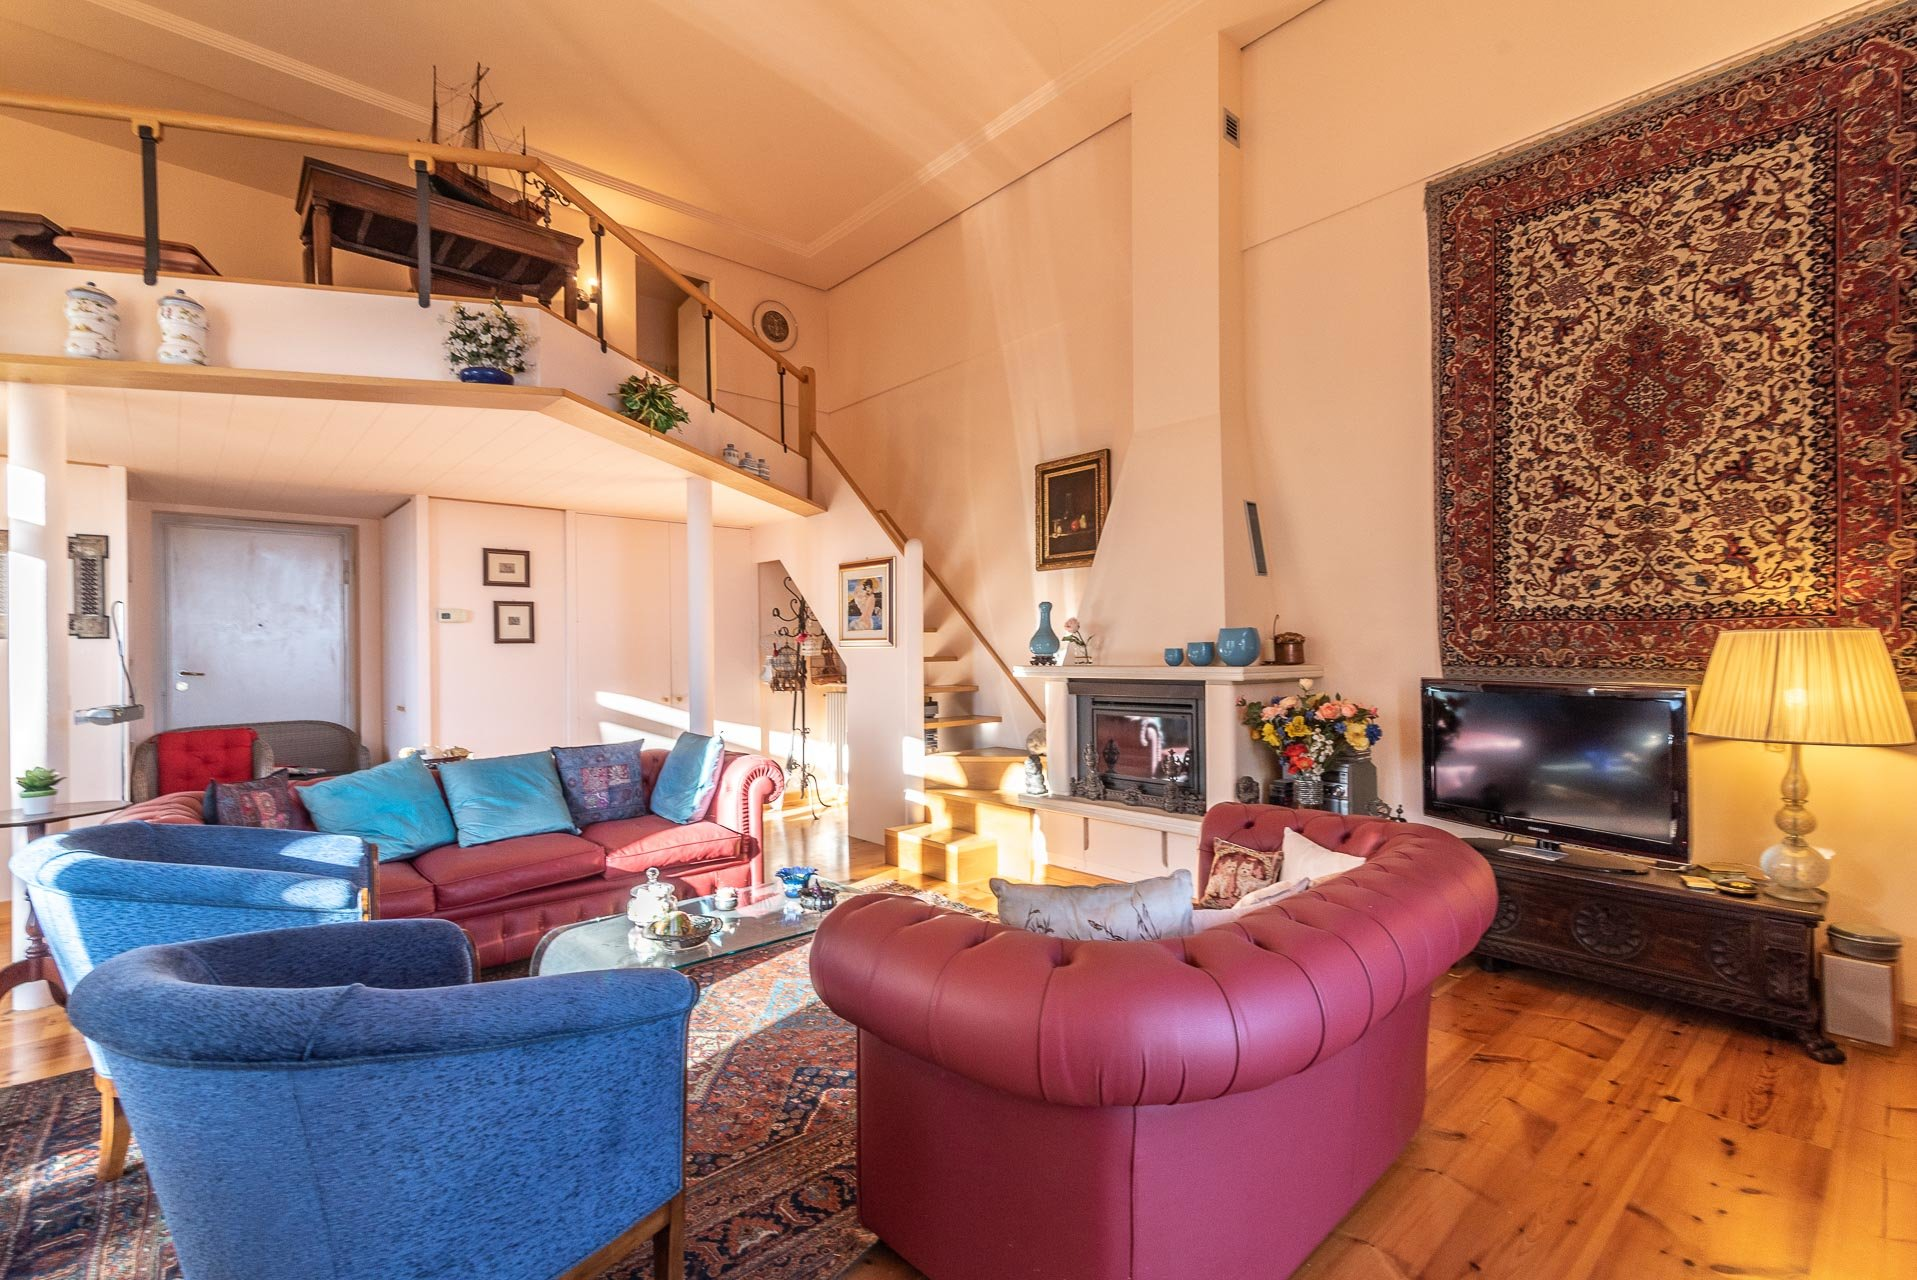 Lake view apartment for sell in Baveno - living room with loft